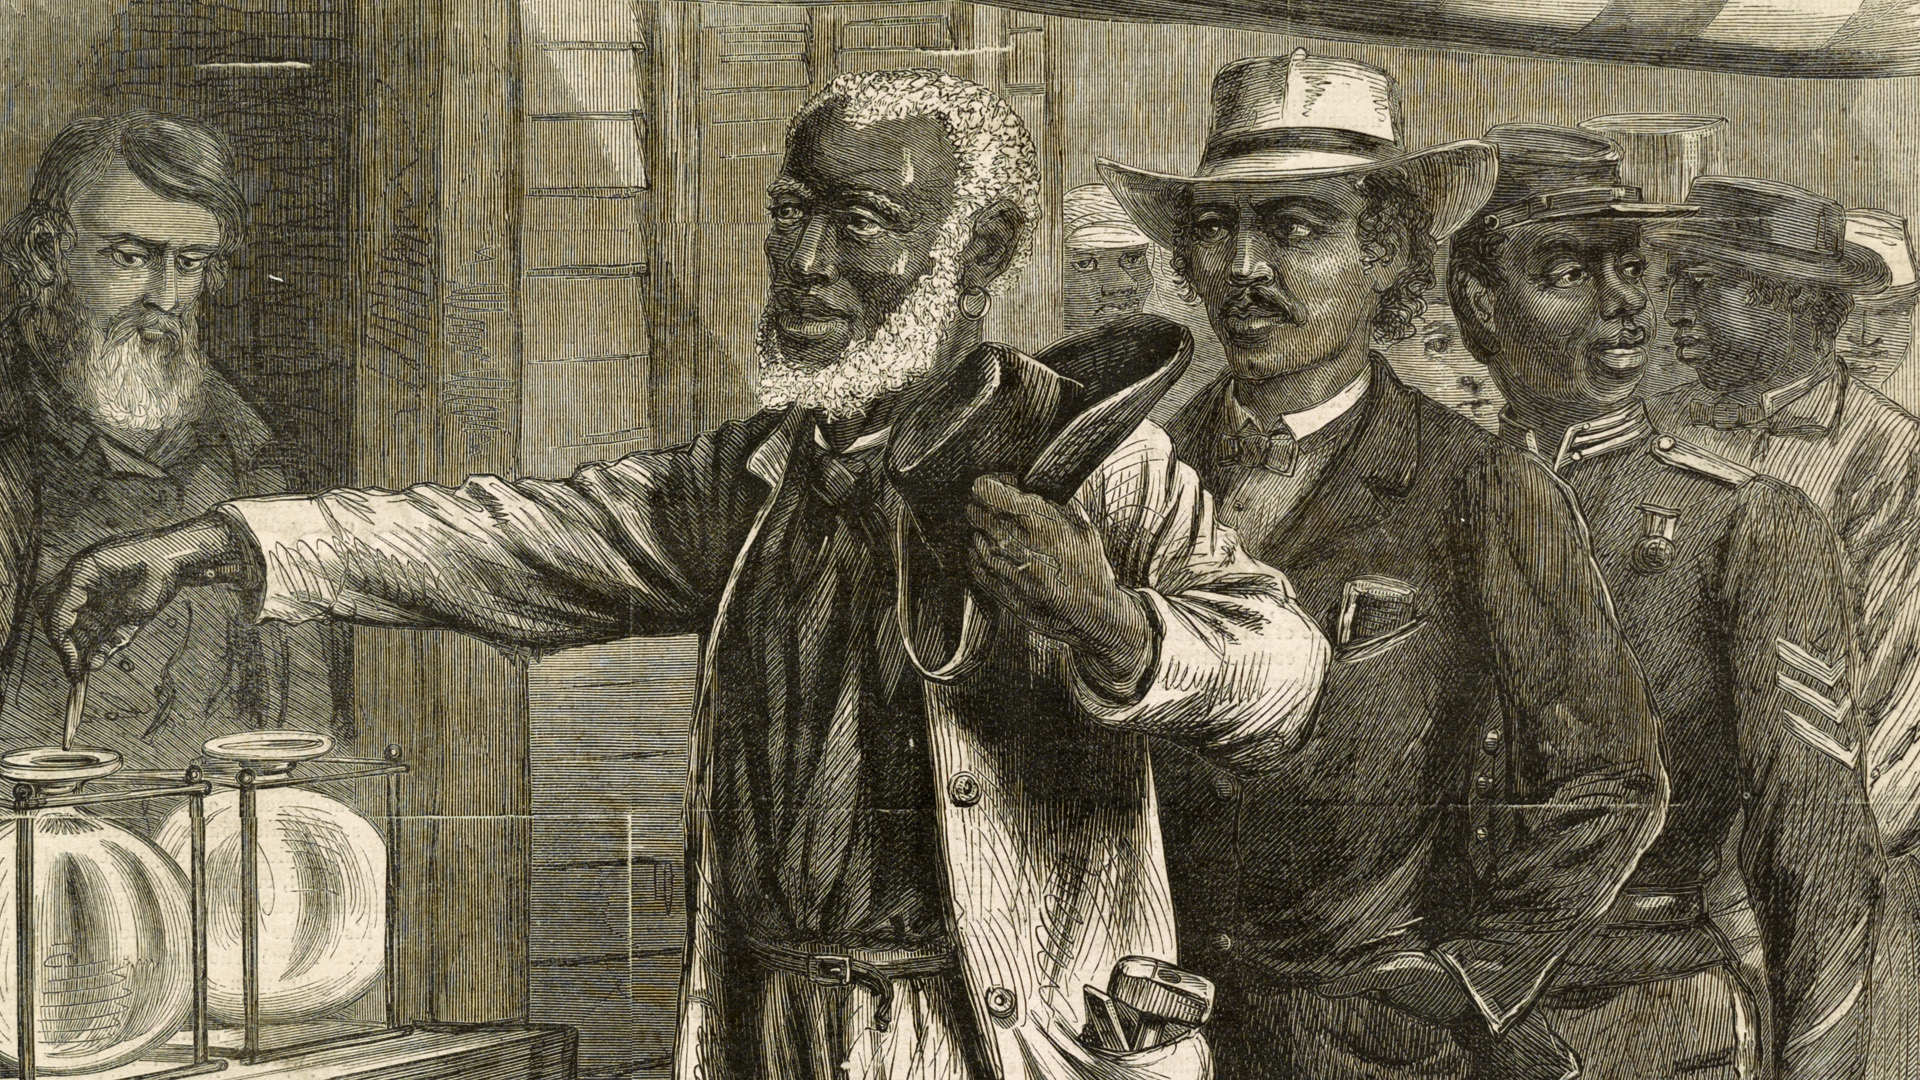 The 15th Amendment enfranchised African Americans during Reconstruction.